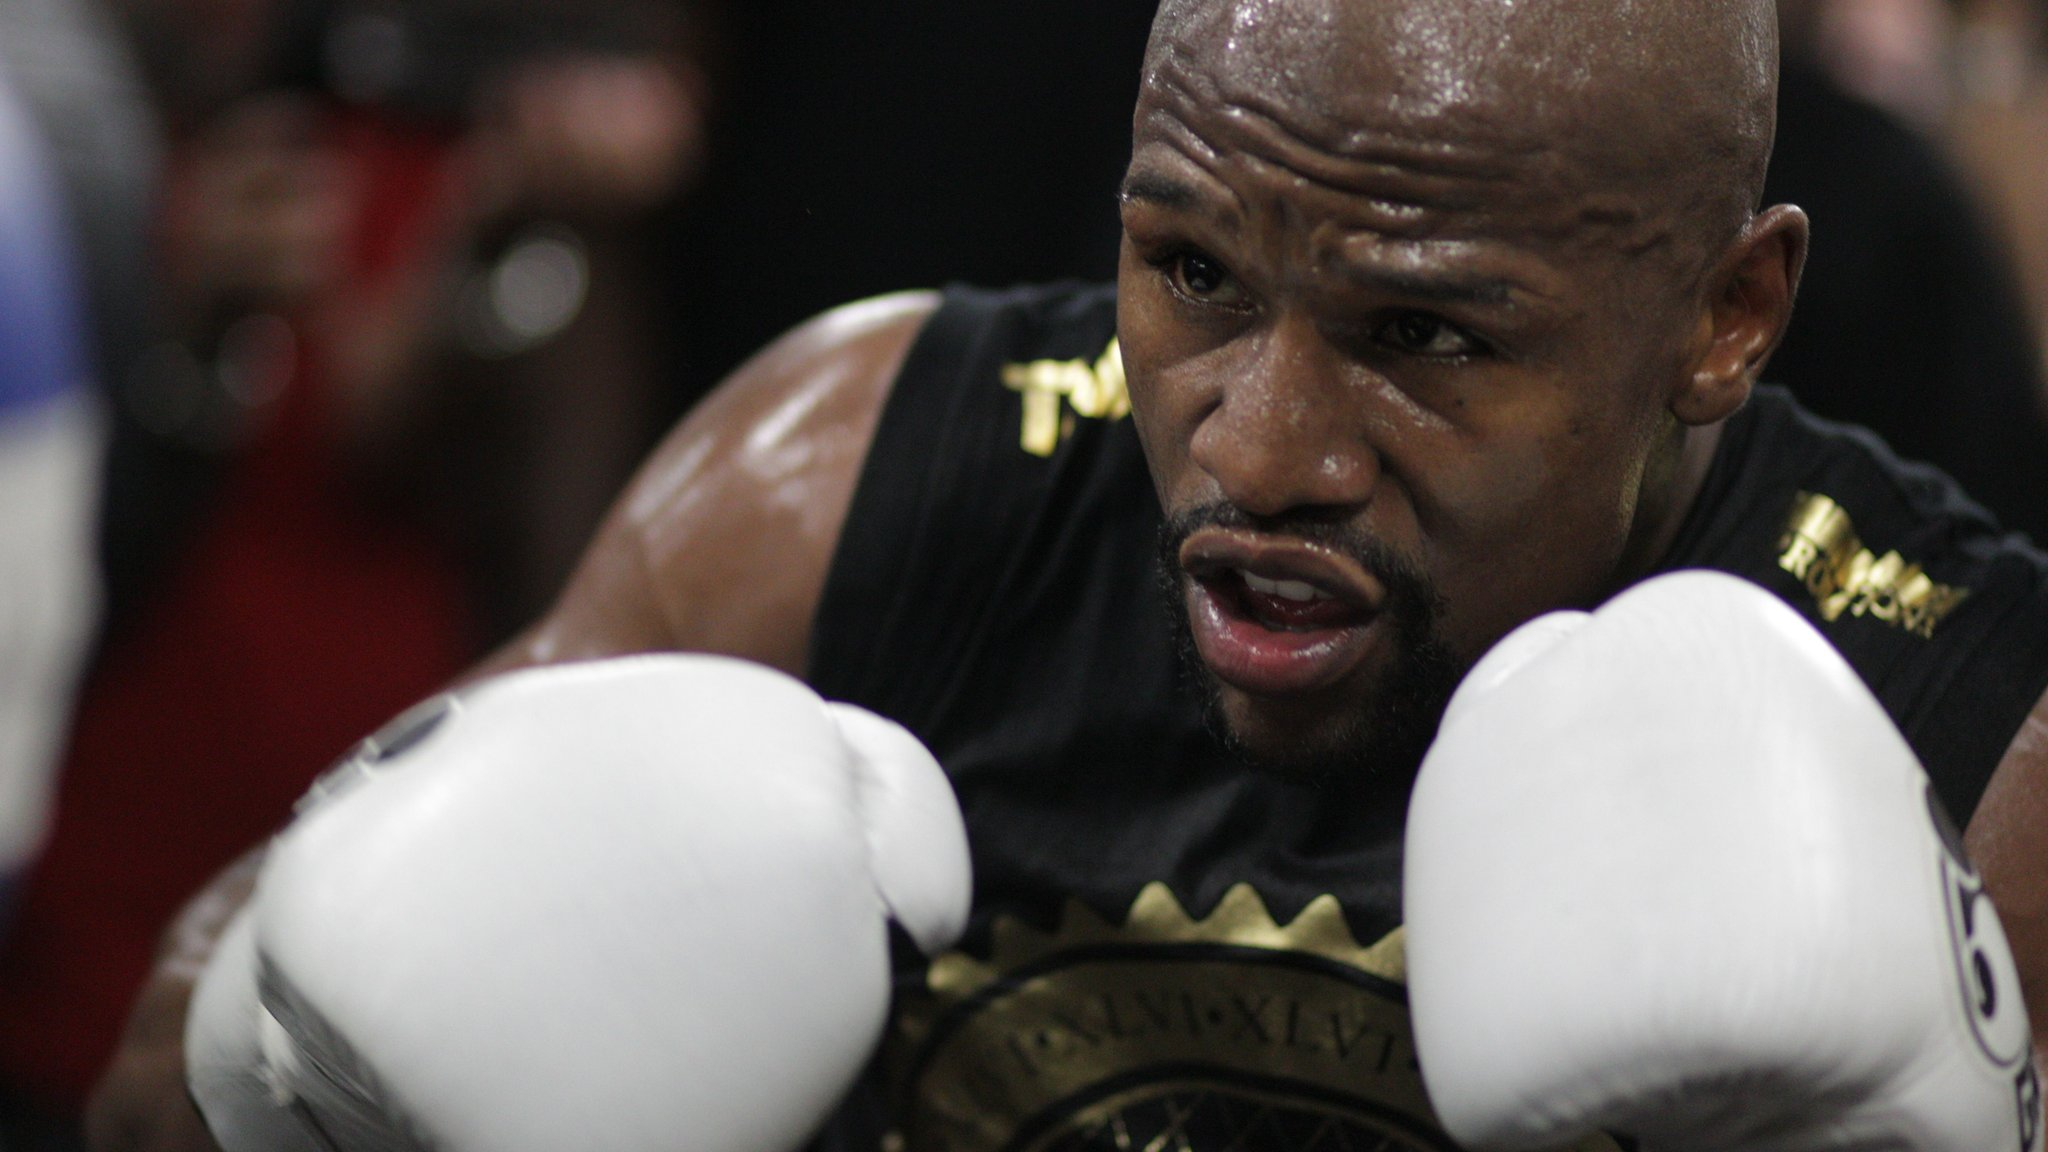 BBC News - Floyd Mayweather and DJ Khaled pay SEC cryptocurrency penalties